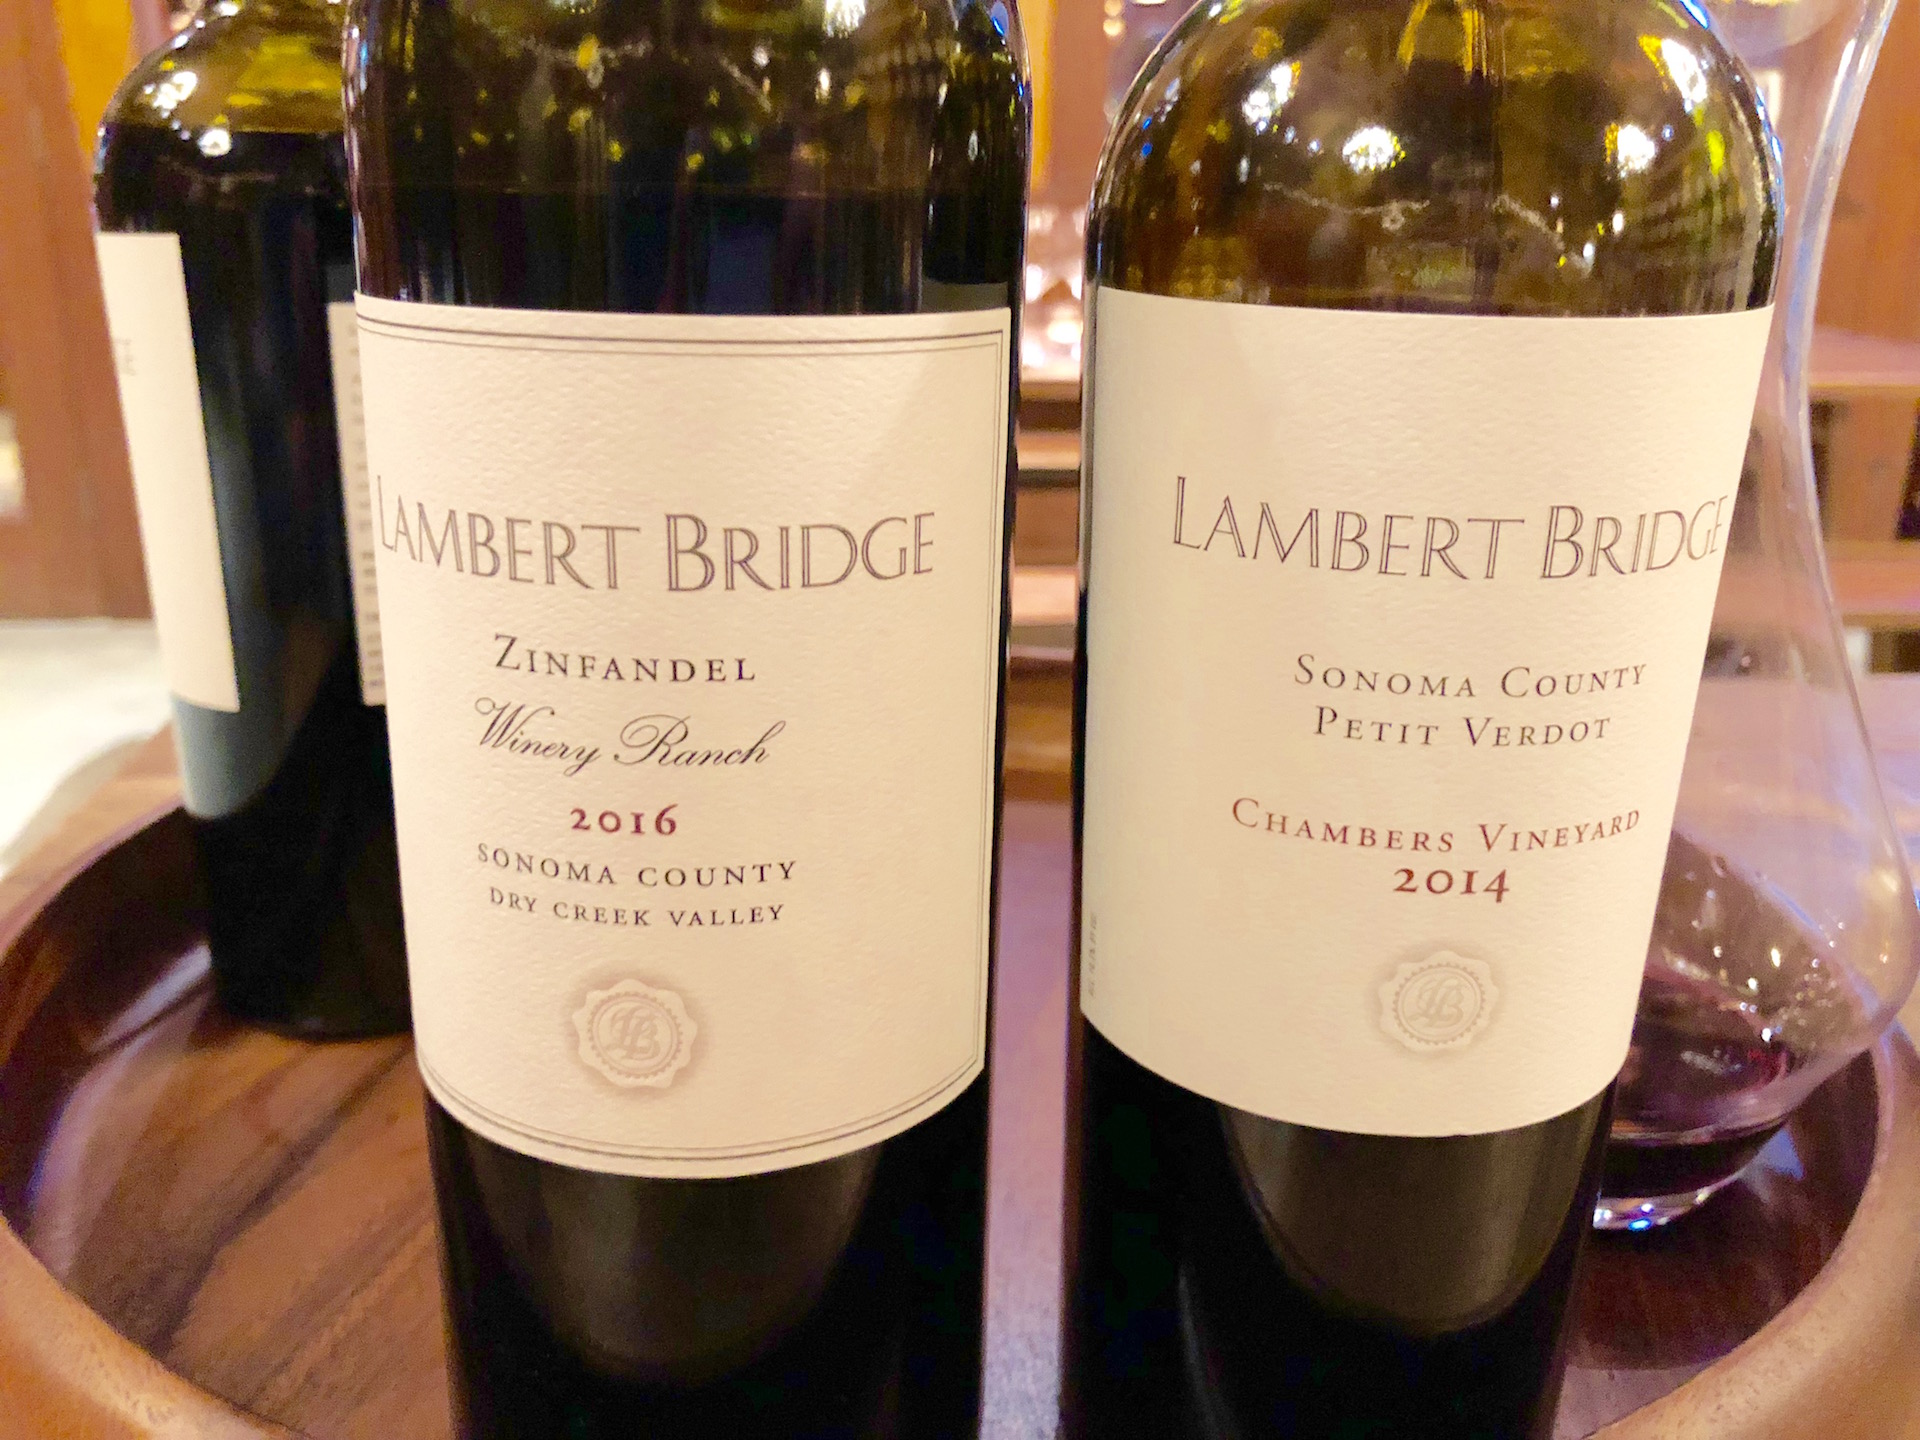 Two standouts at Lambert Bridge Winery in the Dry Creek Valley: a 2016 Winery Ranch Zinfandel and 2014 Chambers Petit Verdot